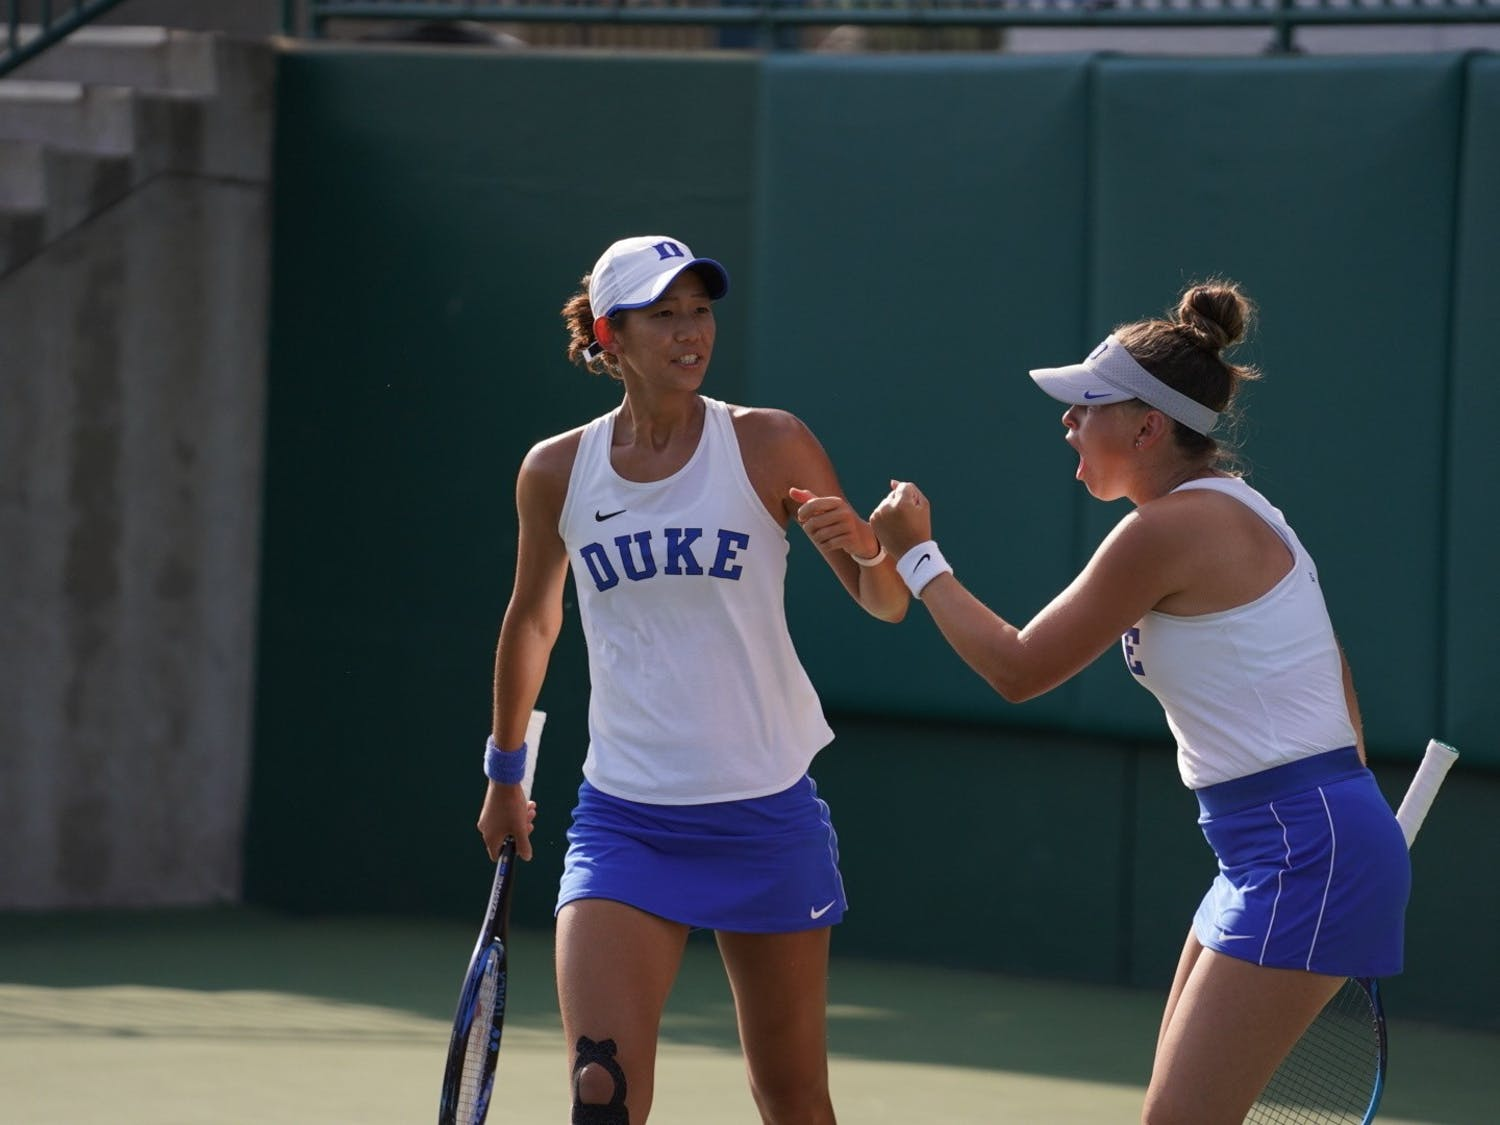 The doubles duo of Meible Chi and Margaryta Bilokin had a first round exit in the NCAA Doubles Championship.